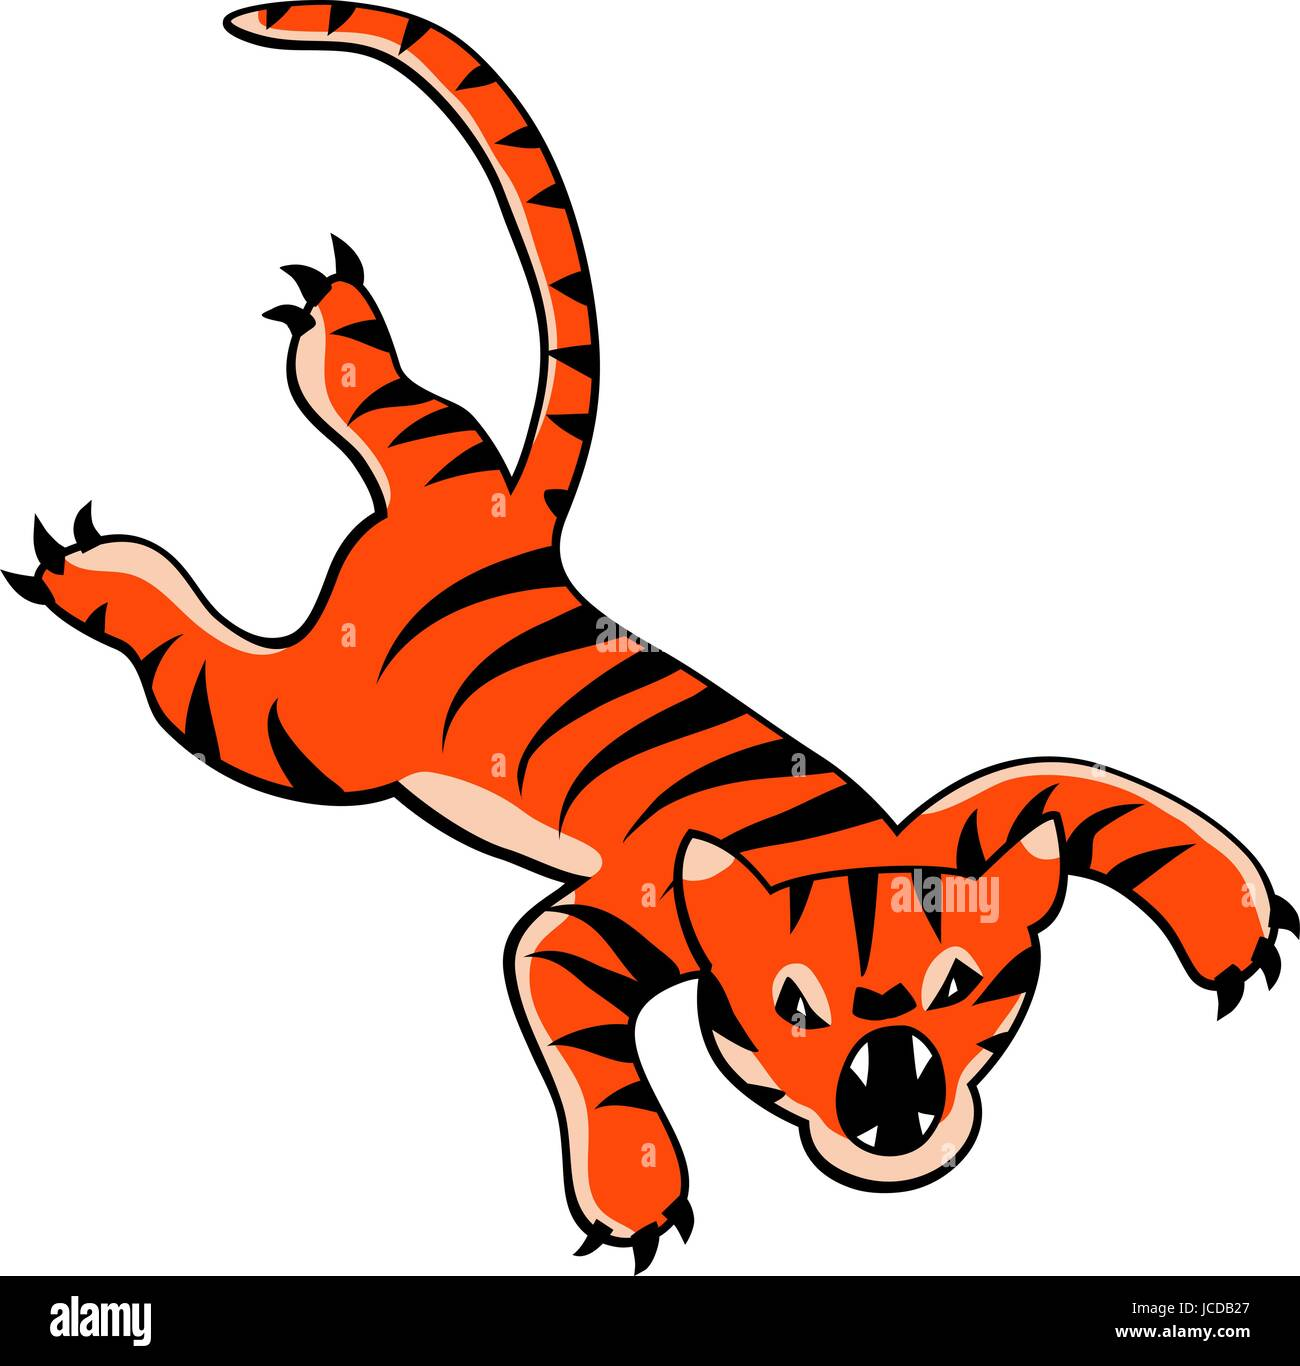 Editable vector cartoon of a fierce tiger leaping - Stock Image